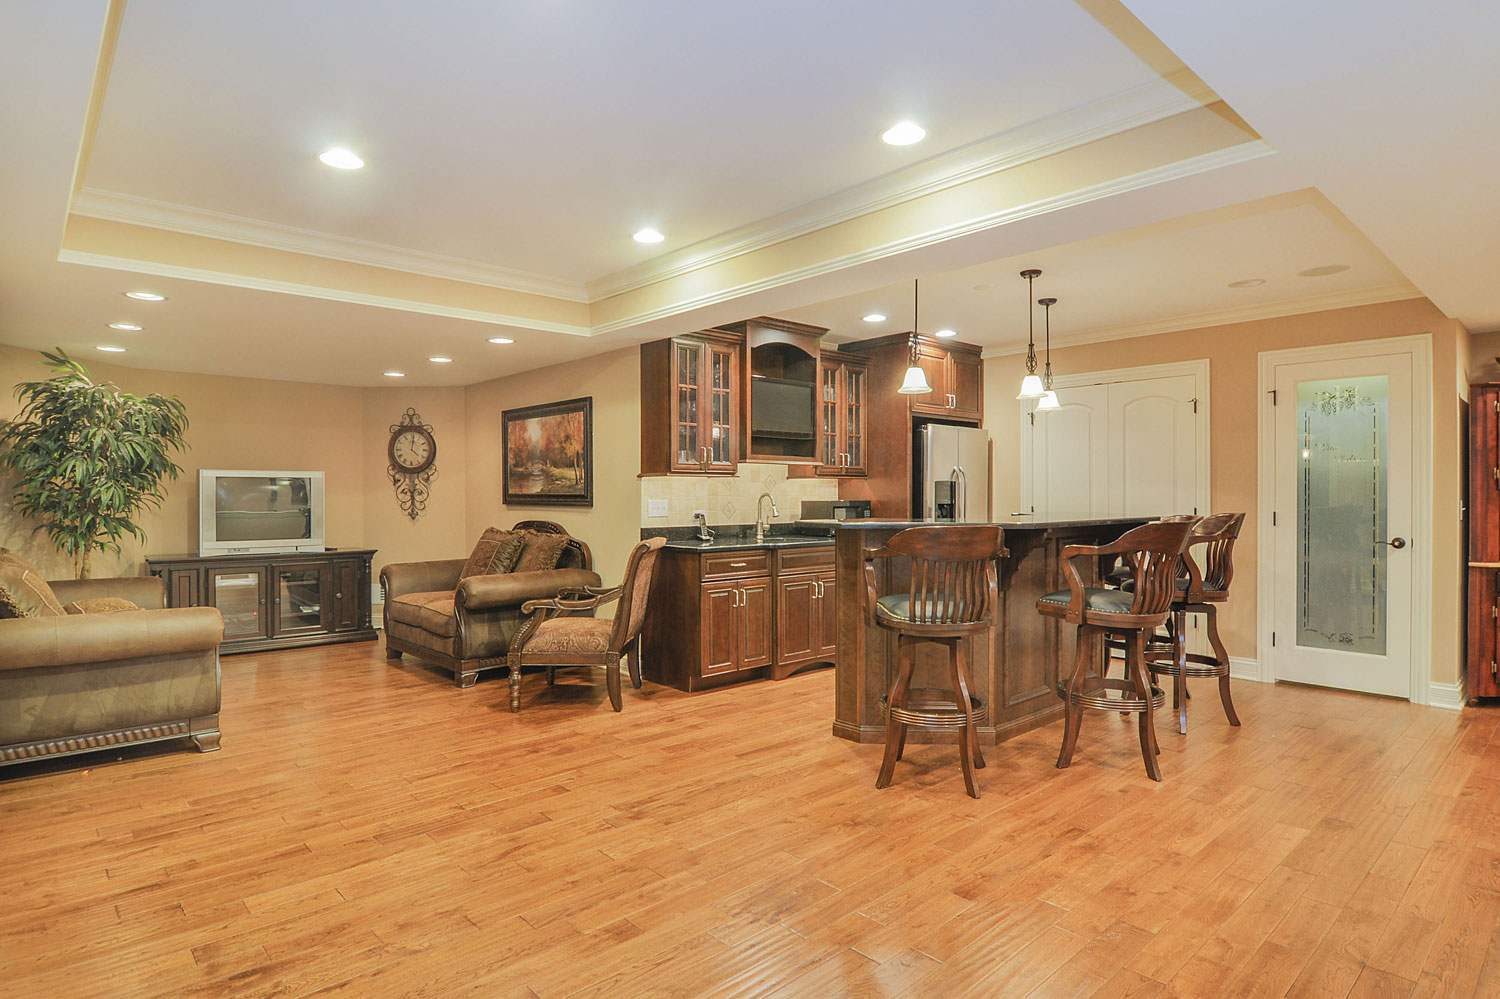 Home Remodeling Ideas Gallery: Mark & Kim's Basement Remodel Pictures